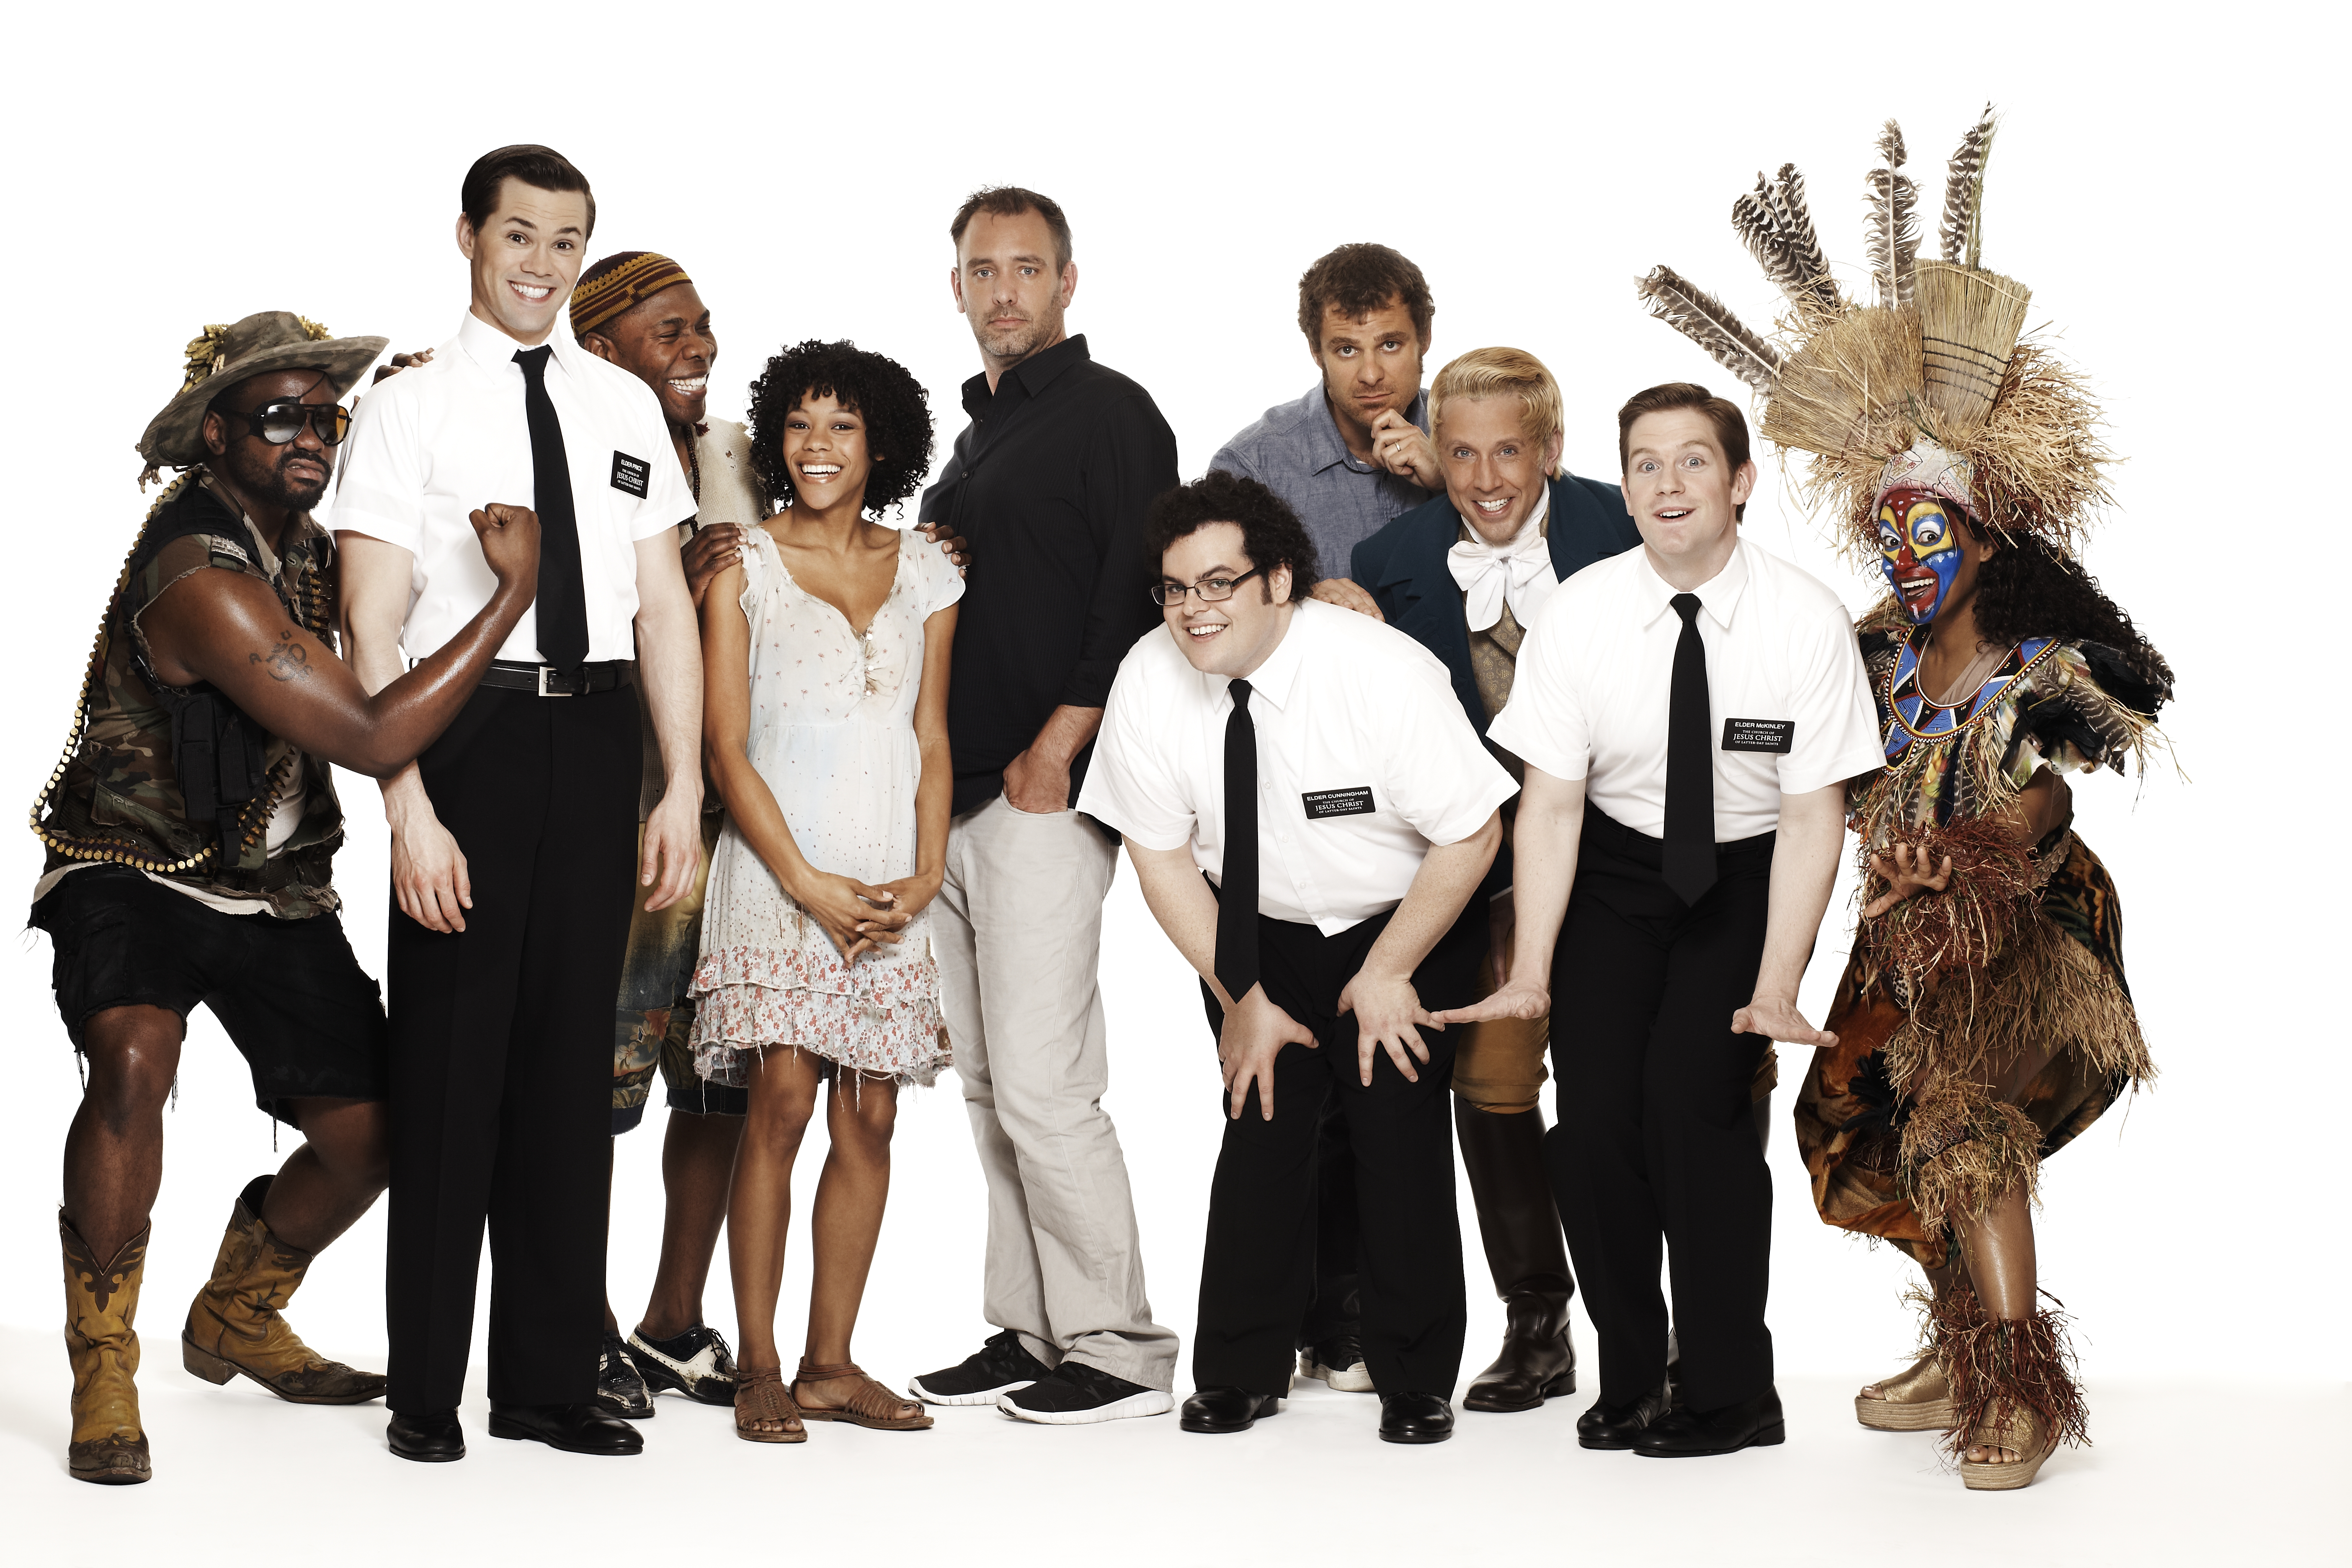 Book Of Mormon Traveling Show Cast